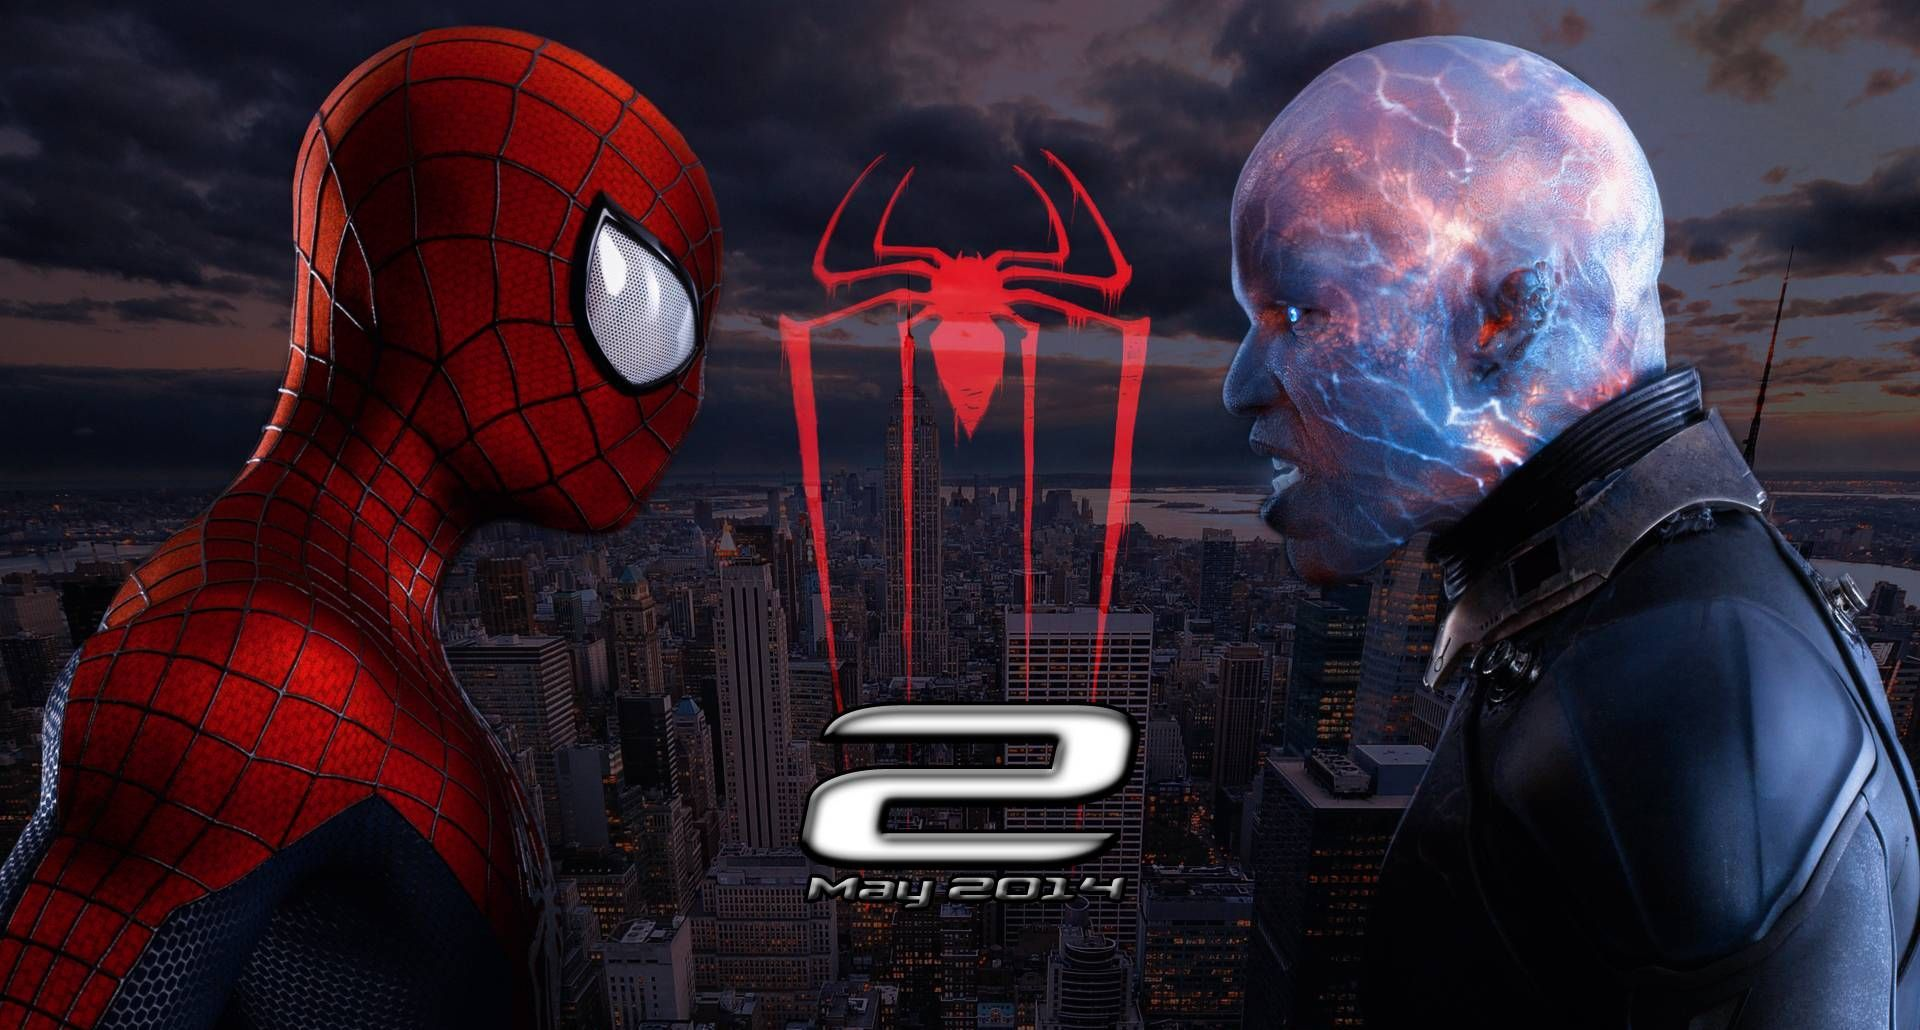 1920 x 1080 px spiderman image full hd by Cleveland MacDonald